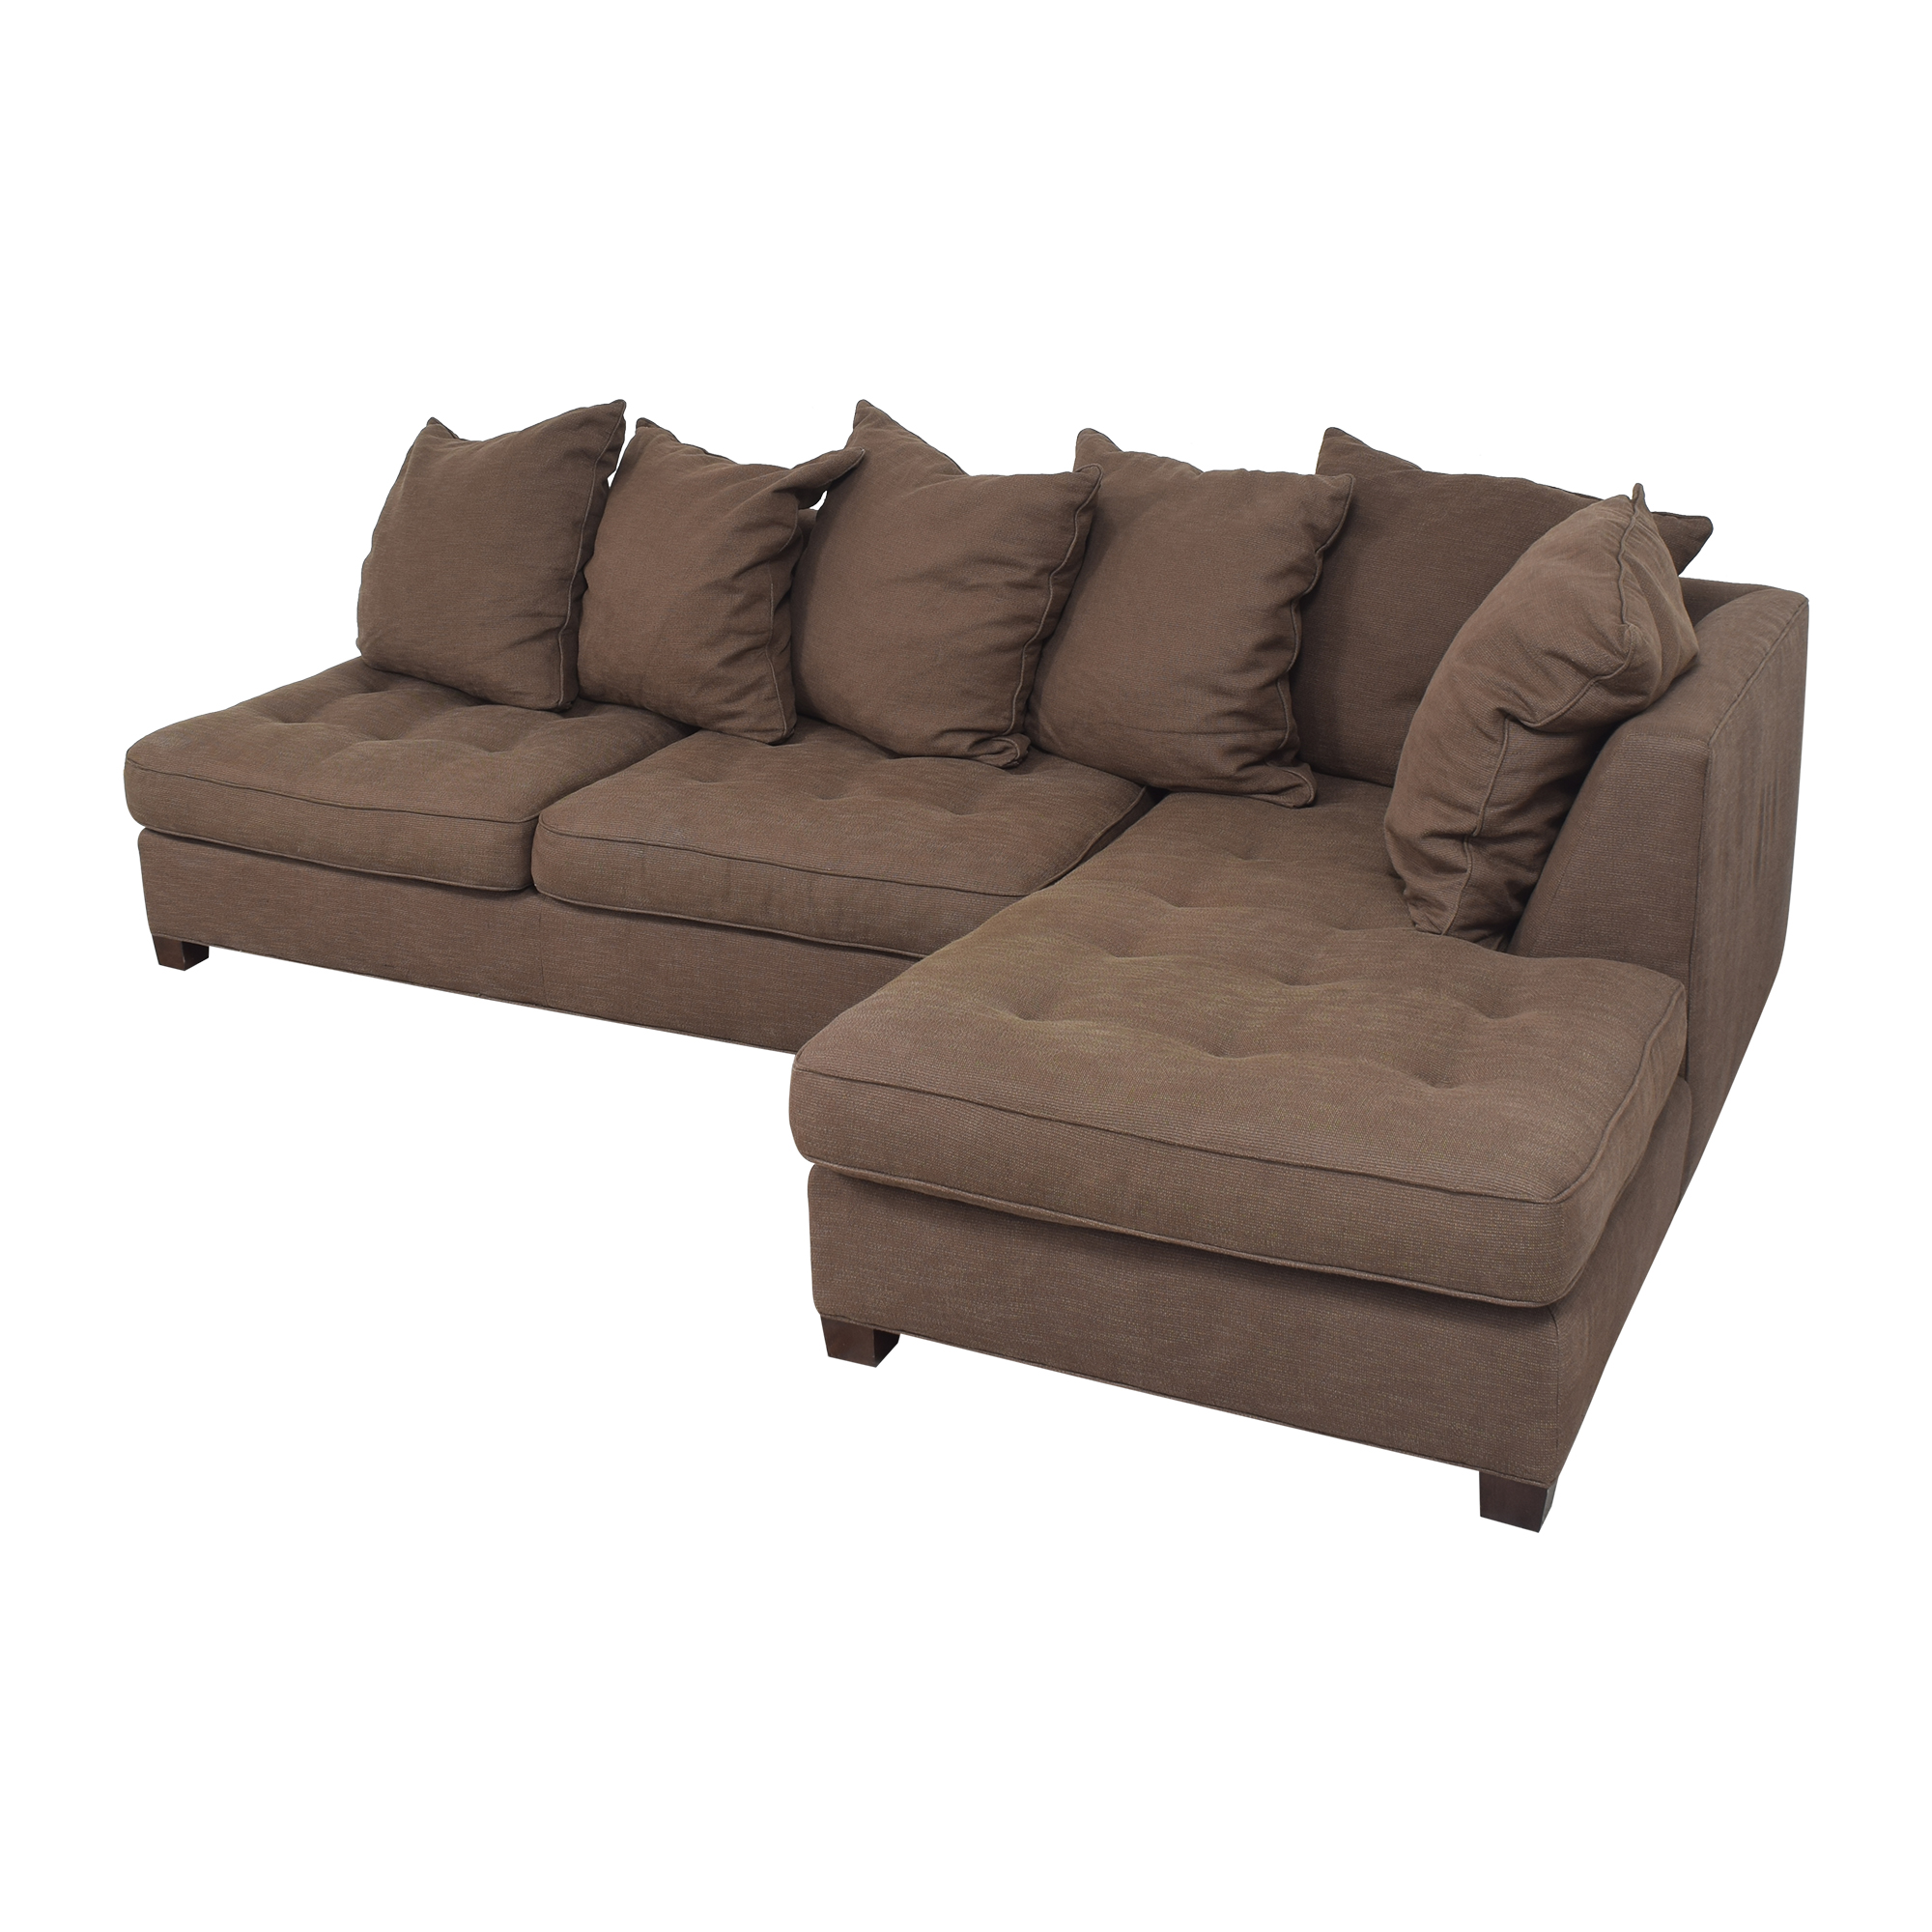 Pottery Barn Sectional Sofa with Chaise / Sectionals